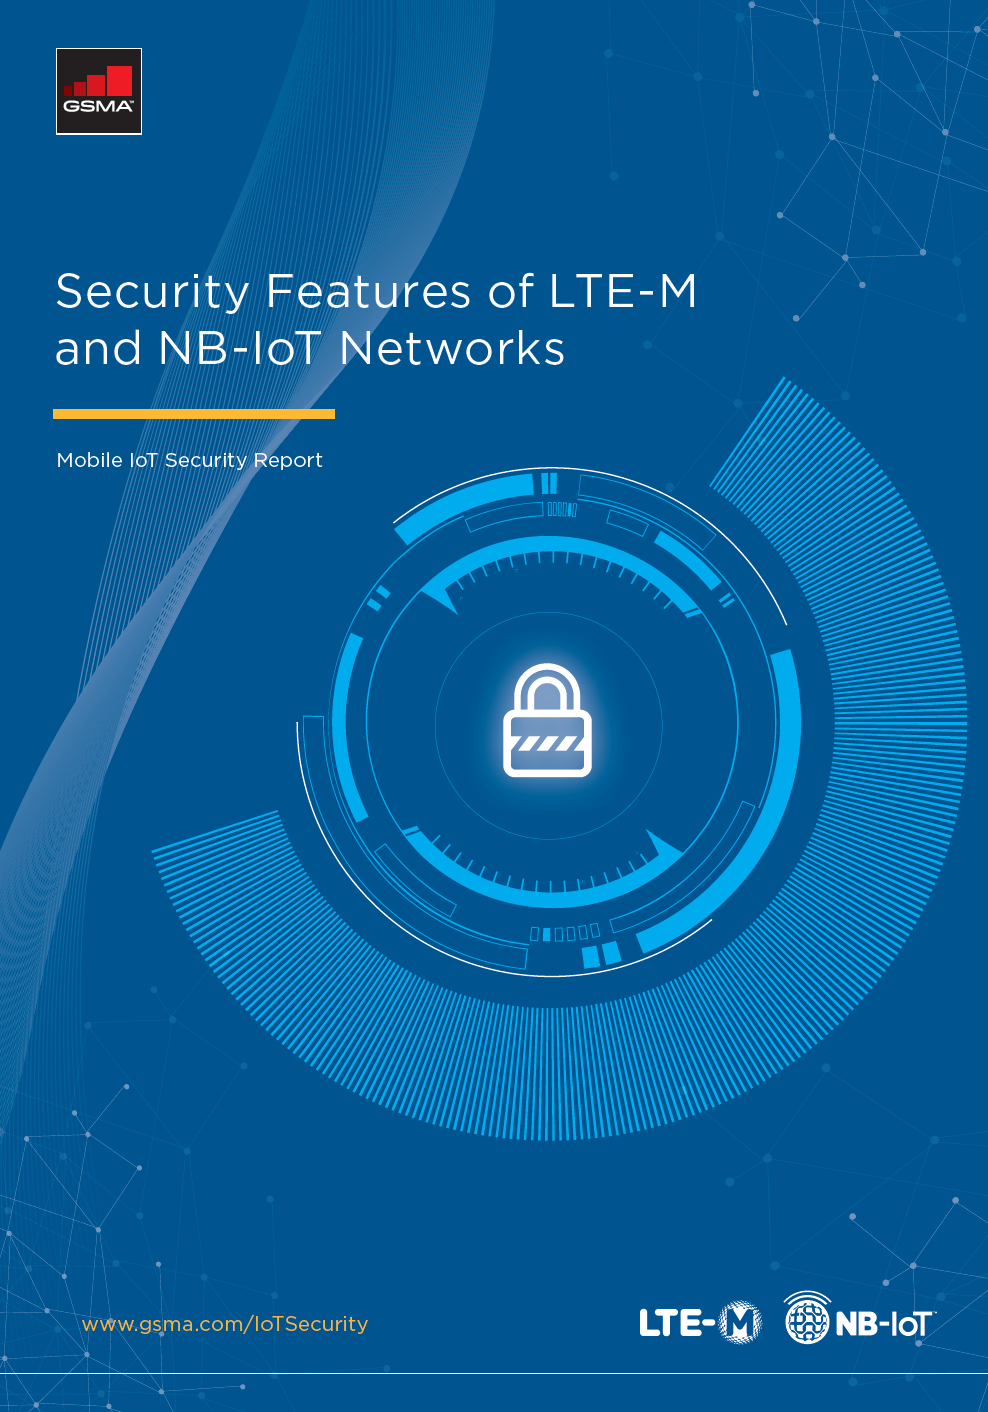 Security Features of LTE-M and NB-IoT Networks